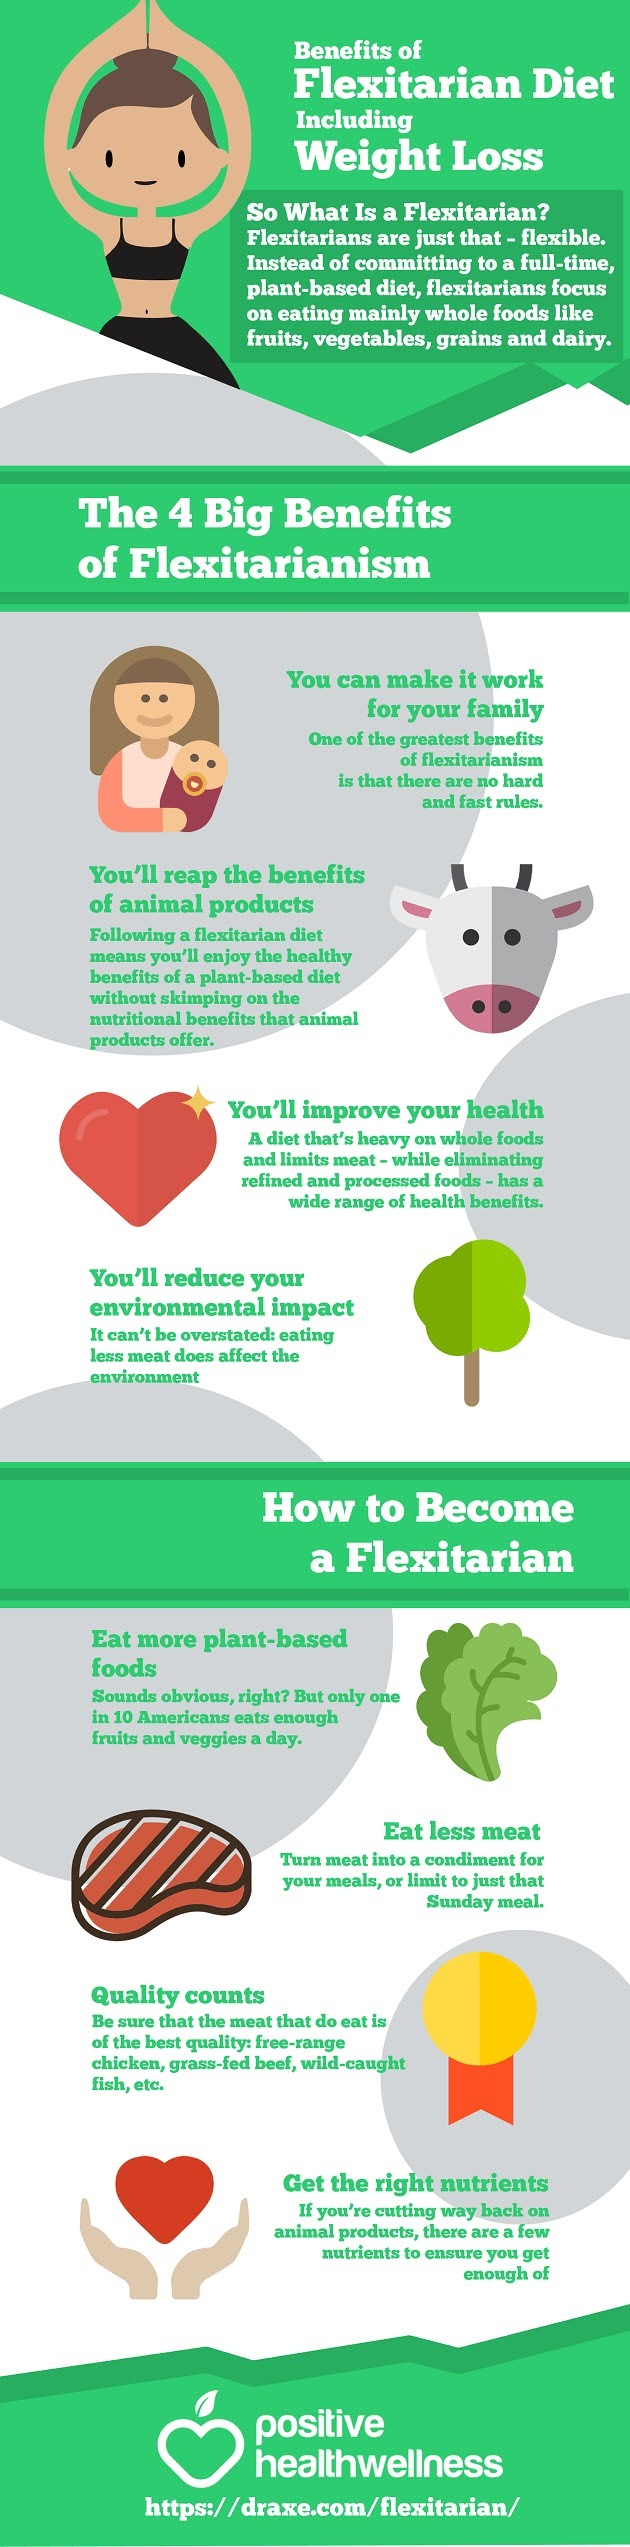 benefits-of-the-flexitarian-diet-including-weight-loss-infographic